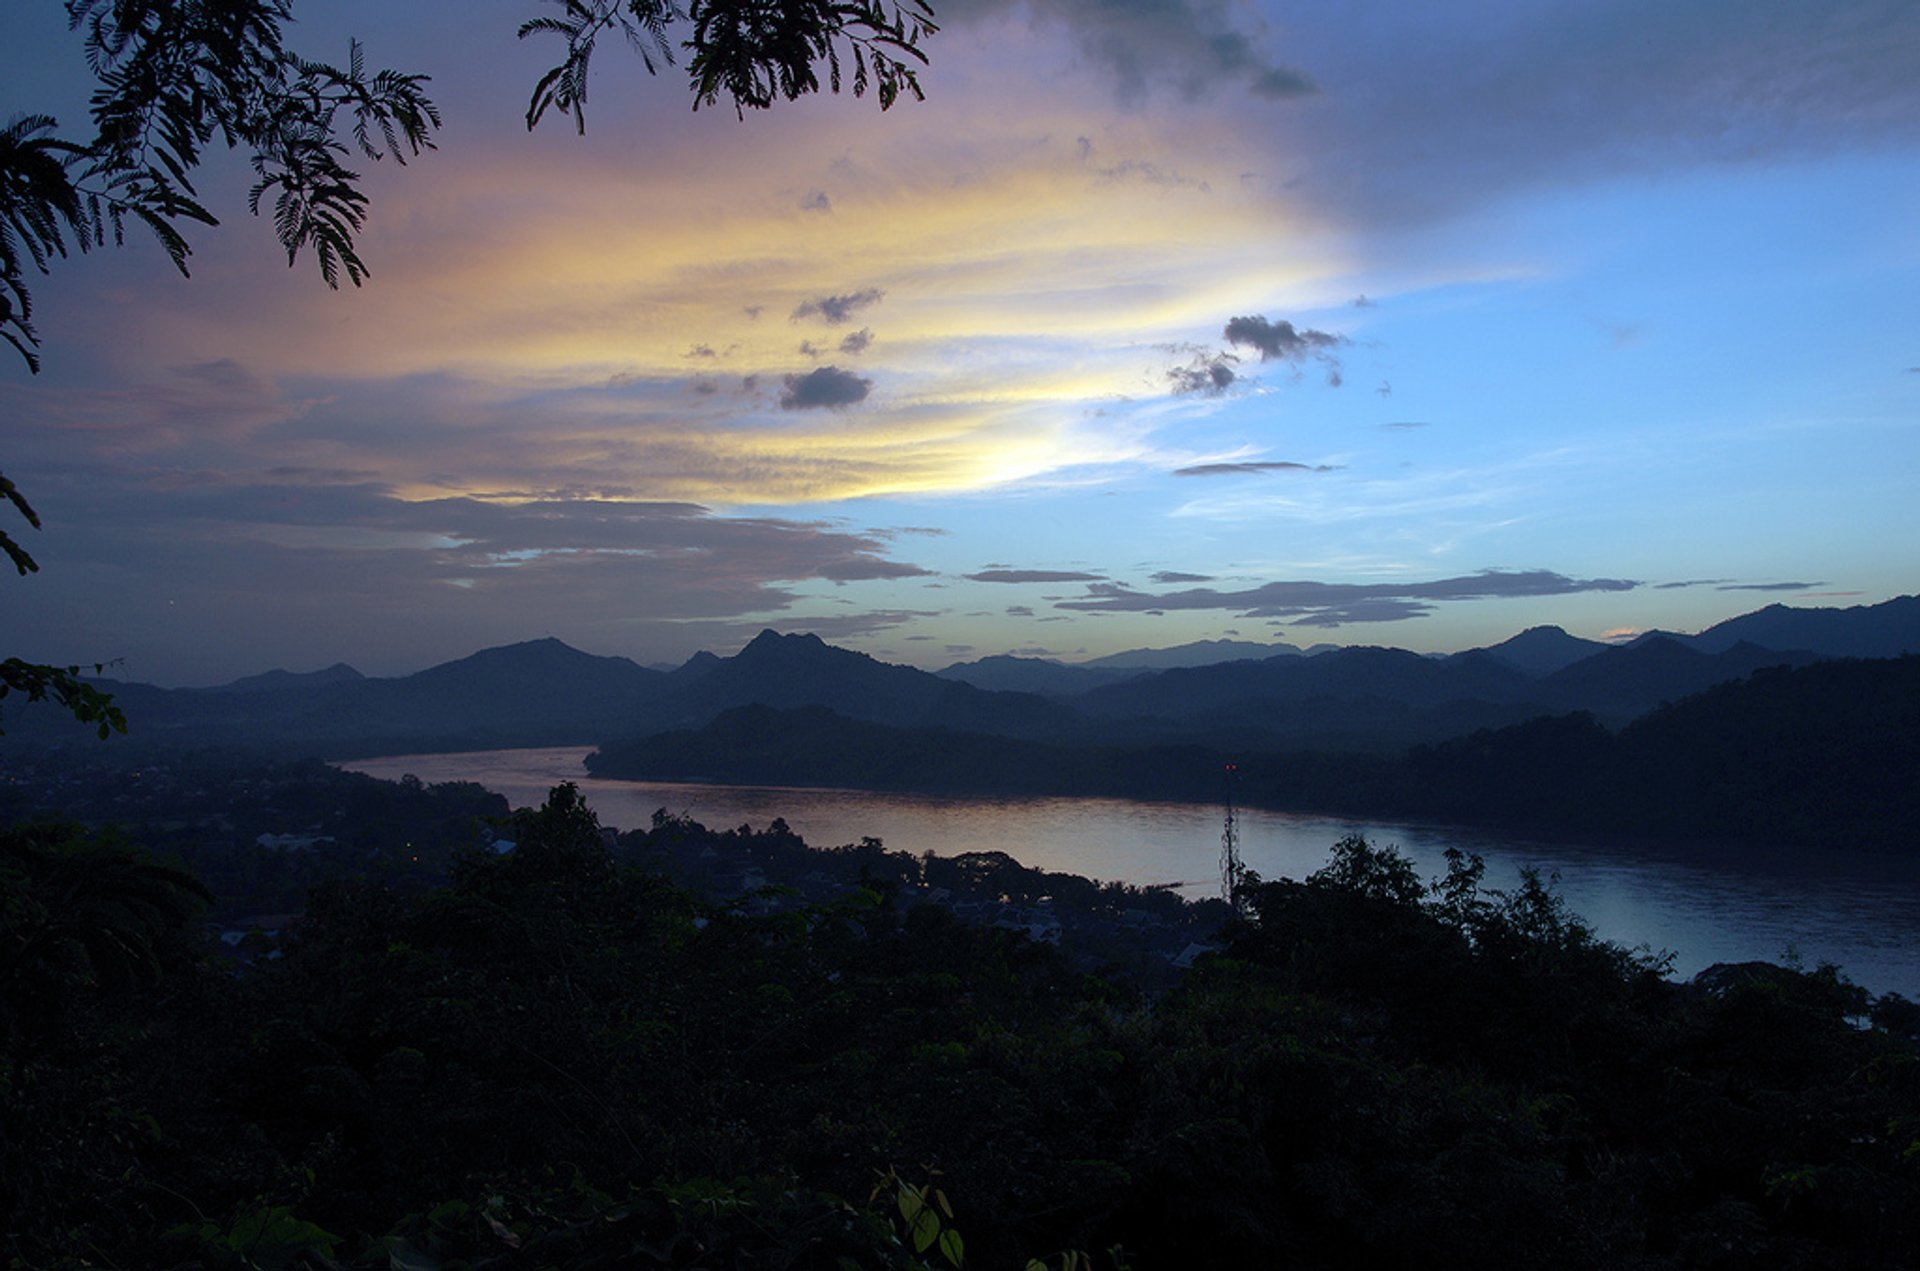 Sunset at Mount Phou Si in Laos - Best Season 2019